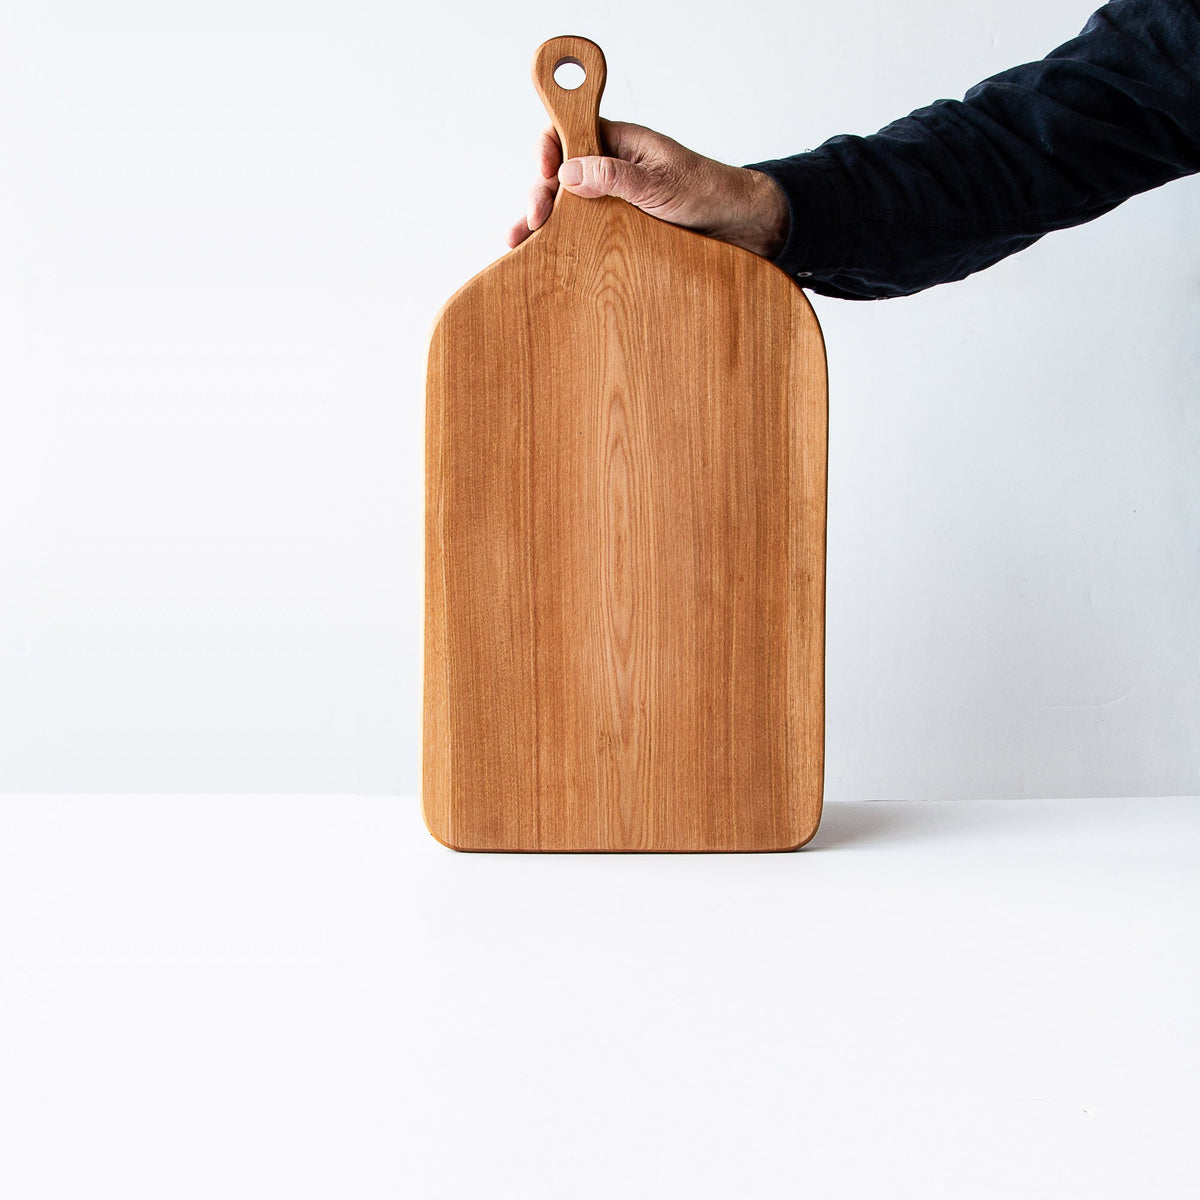 Man Holding a Muskoka N°5 - Large Handmade Serving Board in Birch - Sold by Chic & Basta